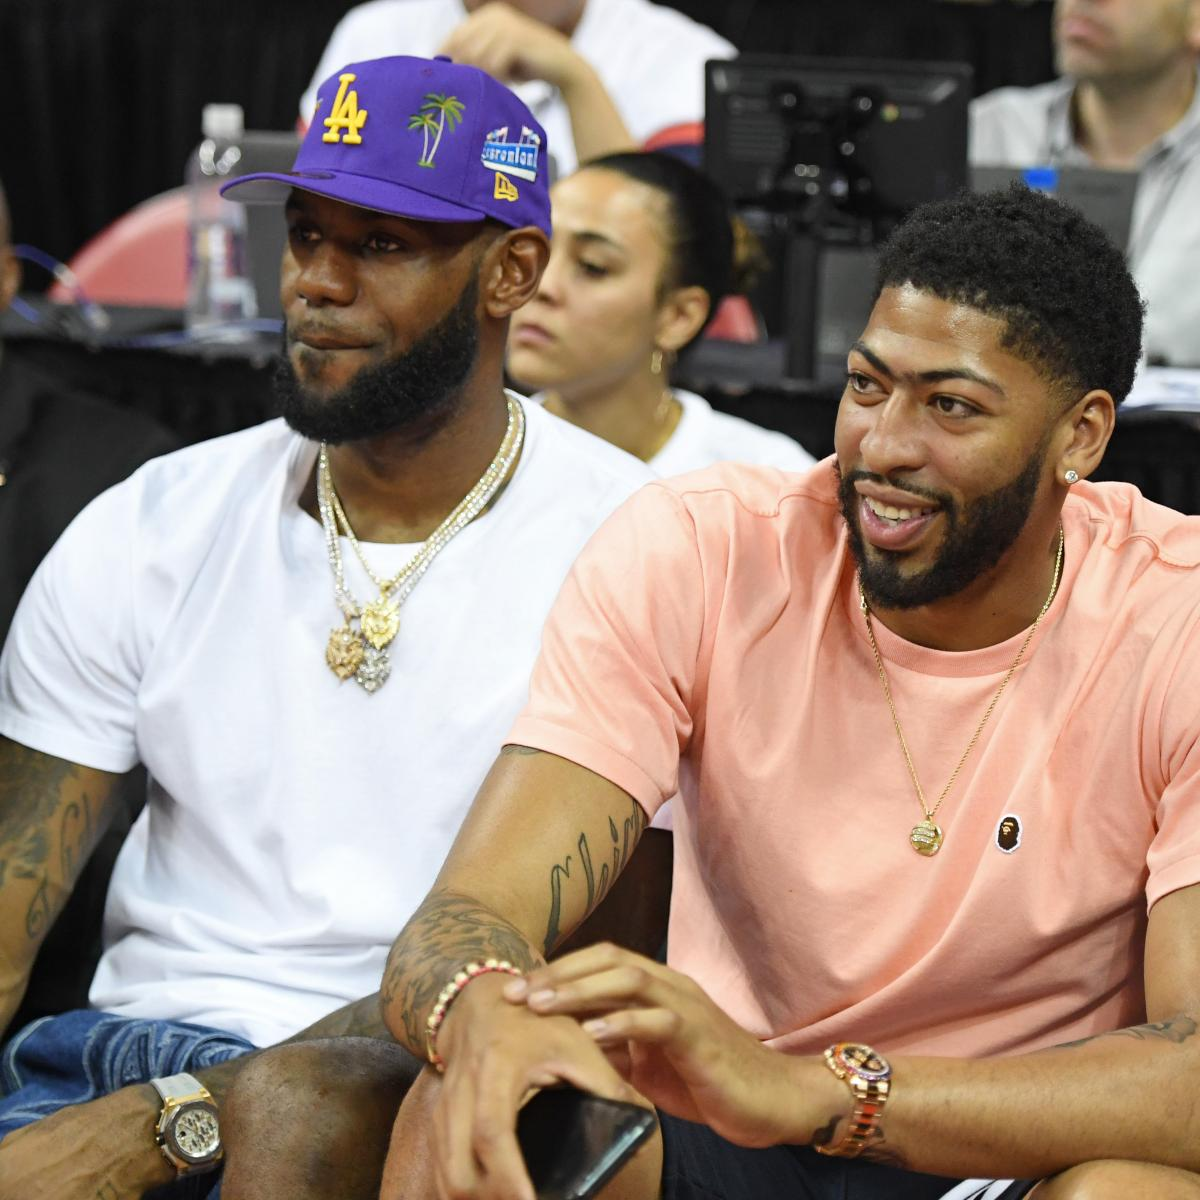 Lakers News: Anthony Davis Trade Officially Completed, Joins LeBron James in LA